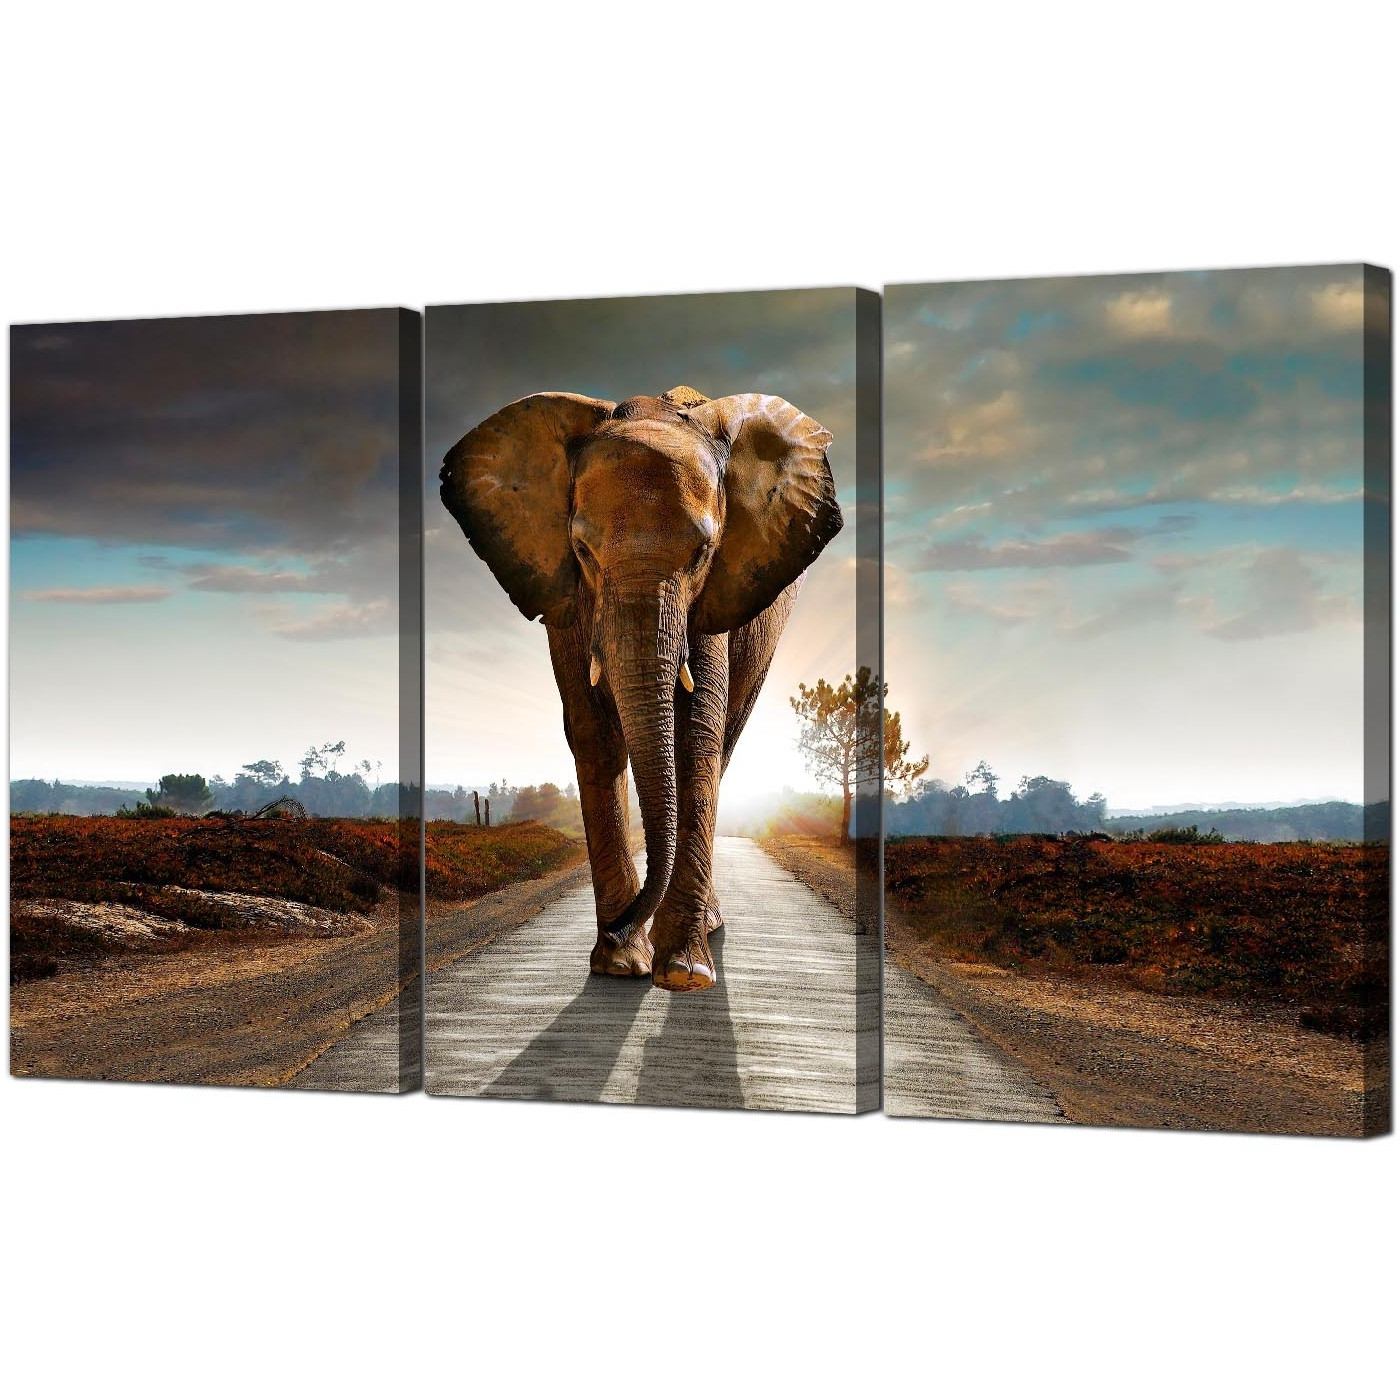 Widely Used Large African Elephant Canvas Prints 3 Part For Your Hallway With 3 Piece Canvas Wall Art (View 5 of 15)